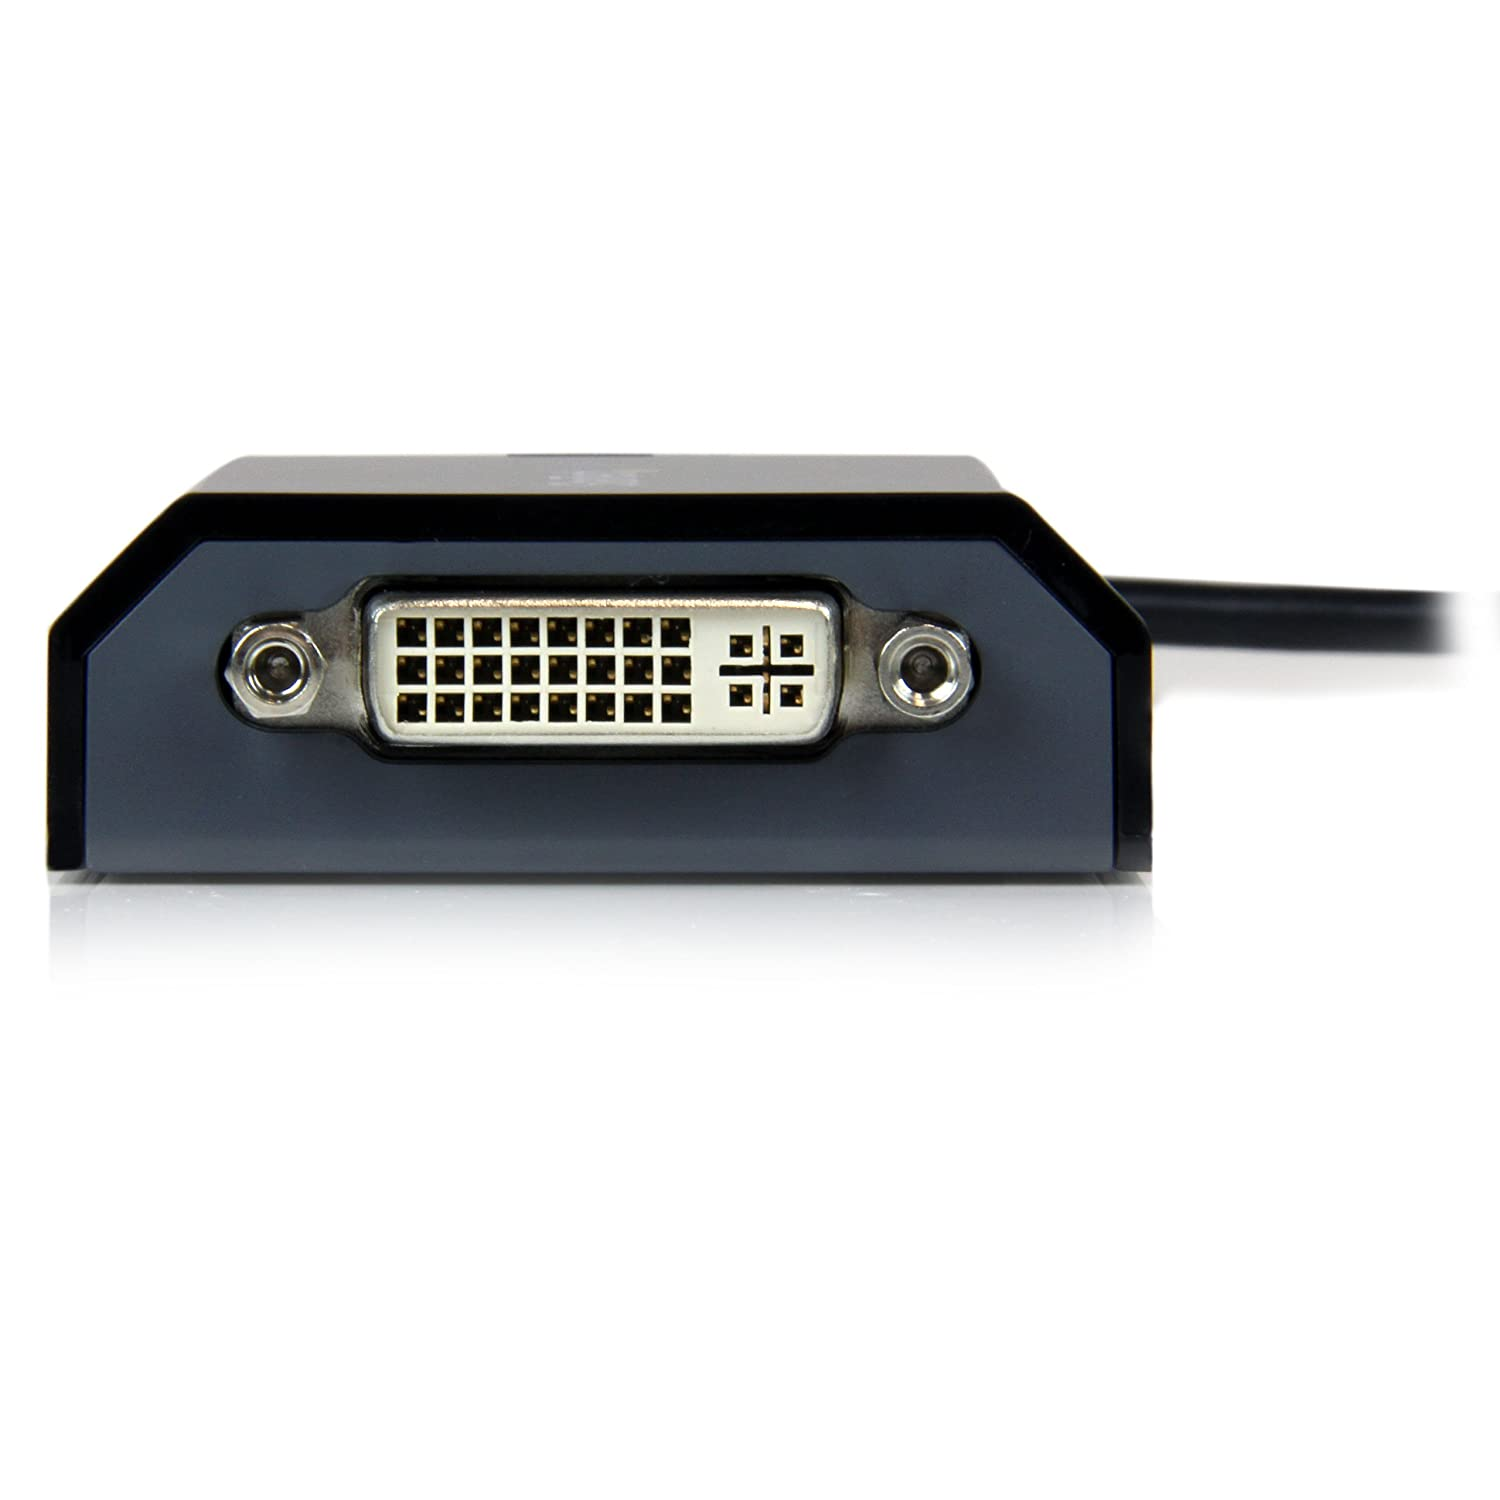 StarTech.com USB to DVI Adapter External USB Video Graphics Card for PC and MAC 1920x1200 USB2DVIPRO2